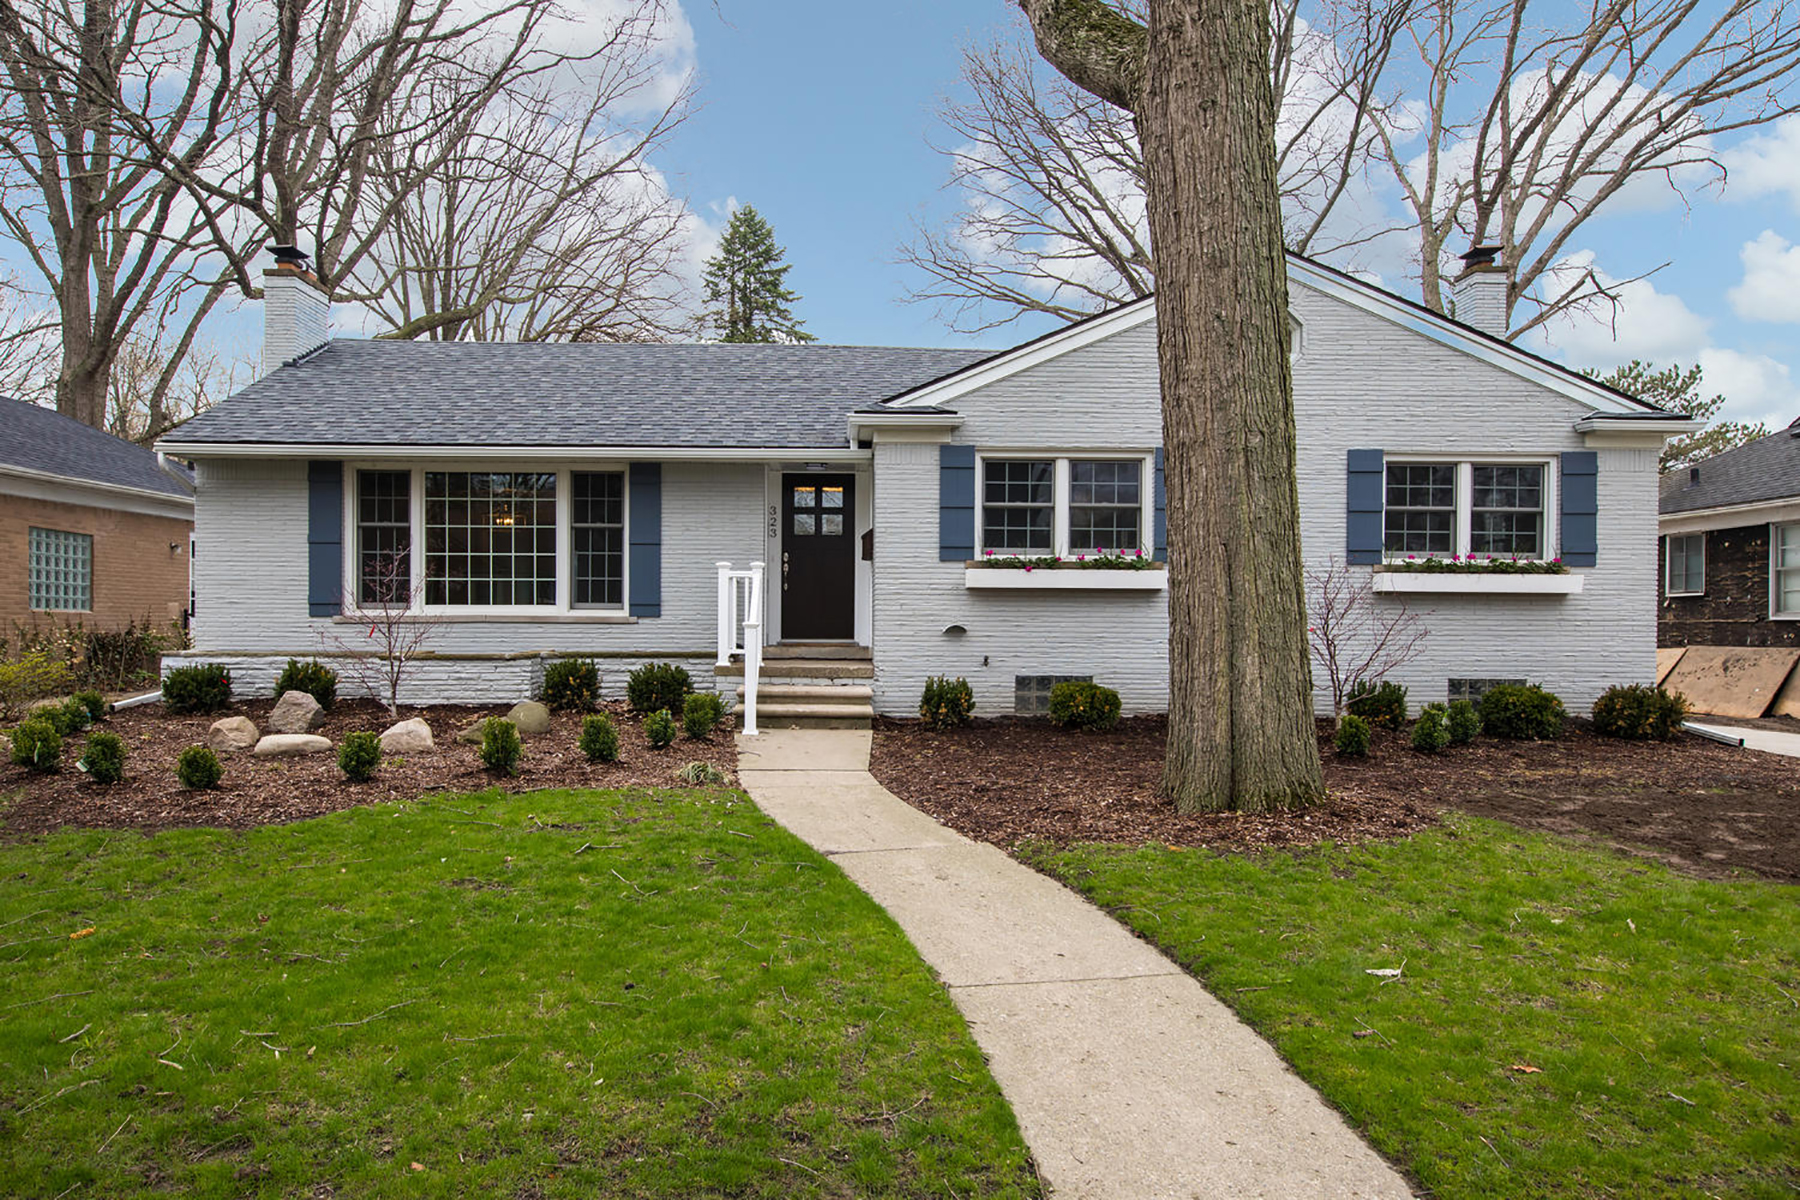 Single Family Homes for Sale at Grosse Pointe Farms 323 Lothrop Grosse Pointe Farms, Michigan 48236 United States